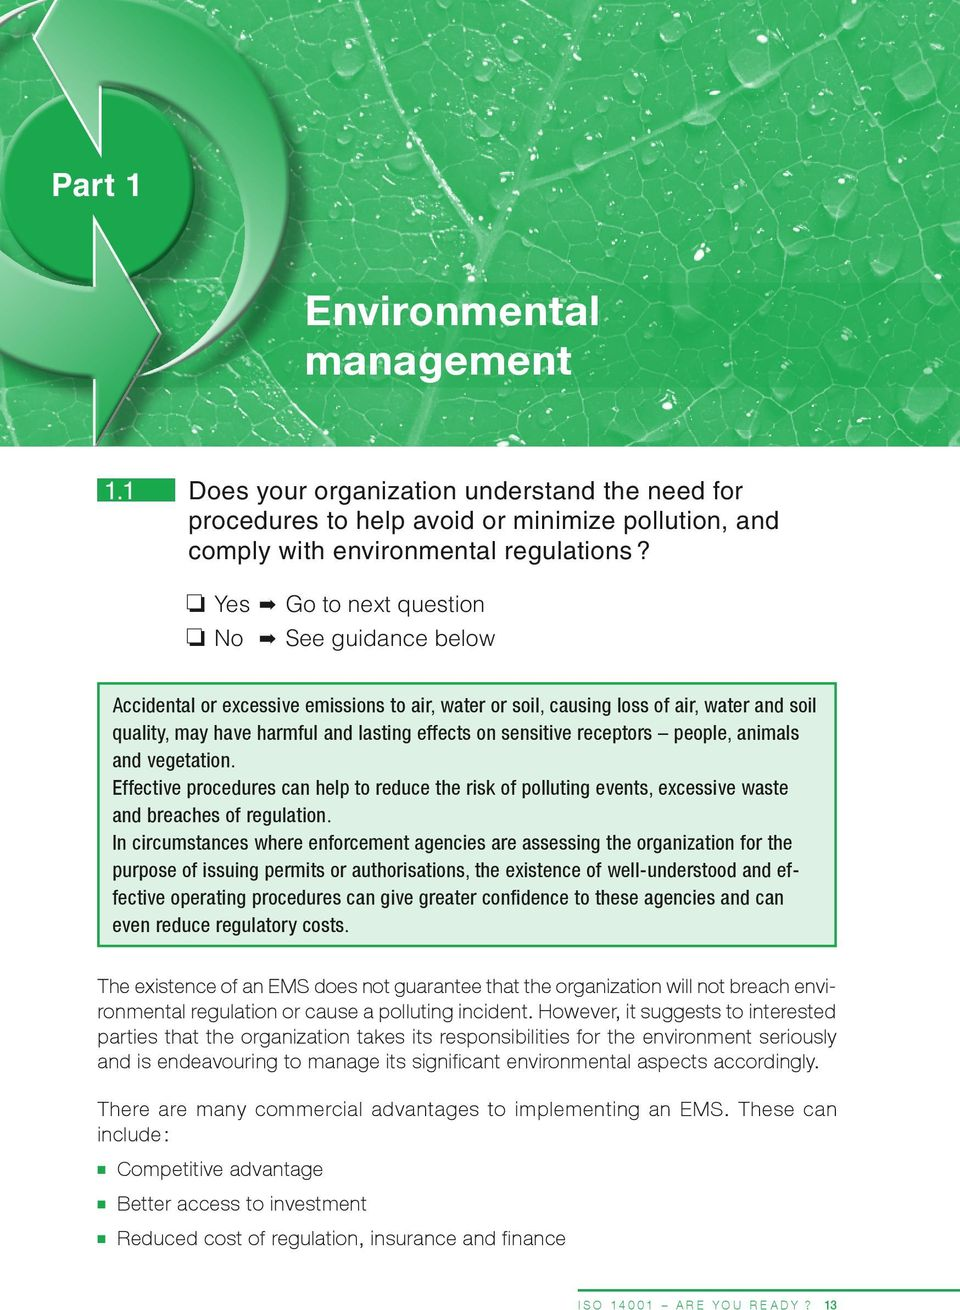 sensitive receptors people, animals and vegetation. Effective procedures can help to reduce the risk of polluting events, excessive waste and breaches of regulation.